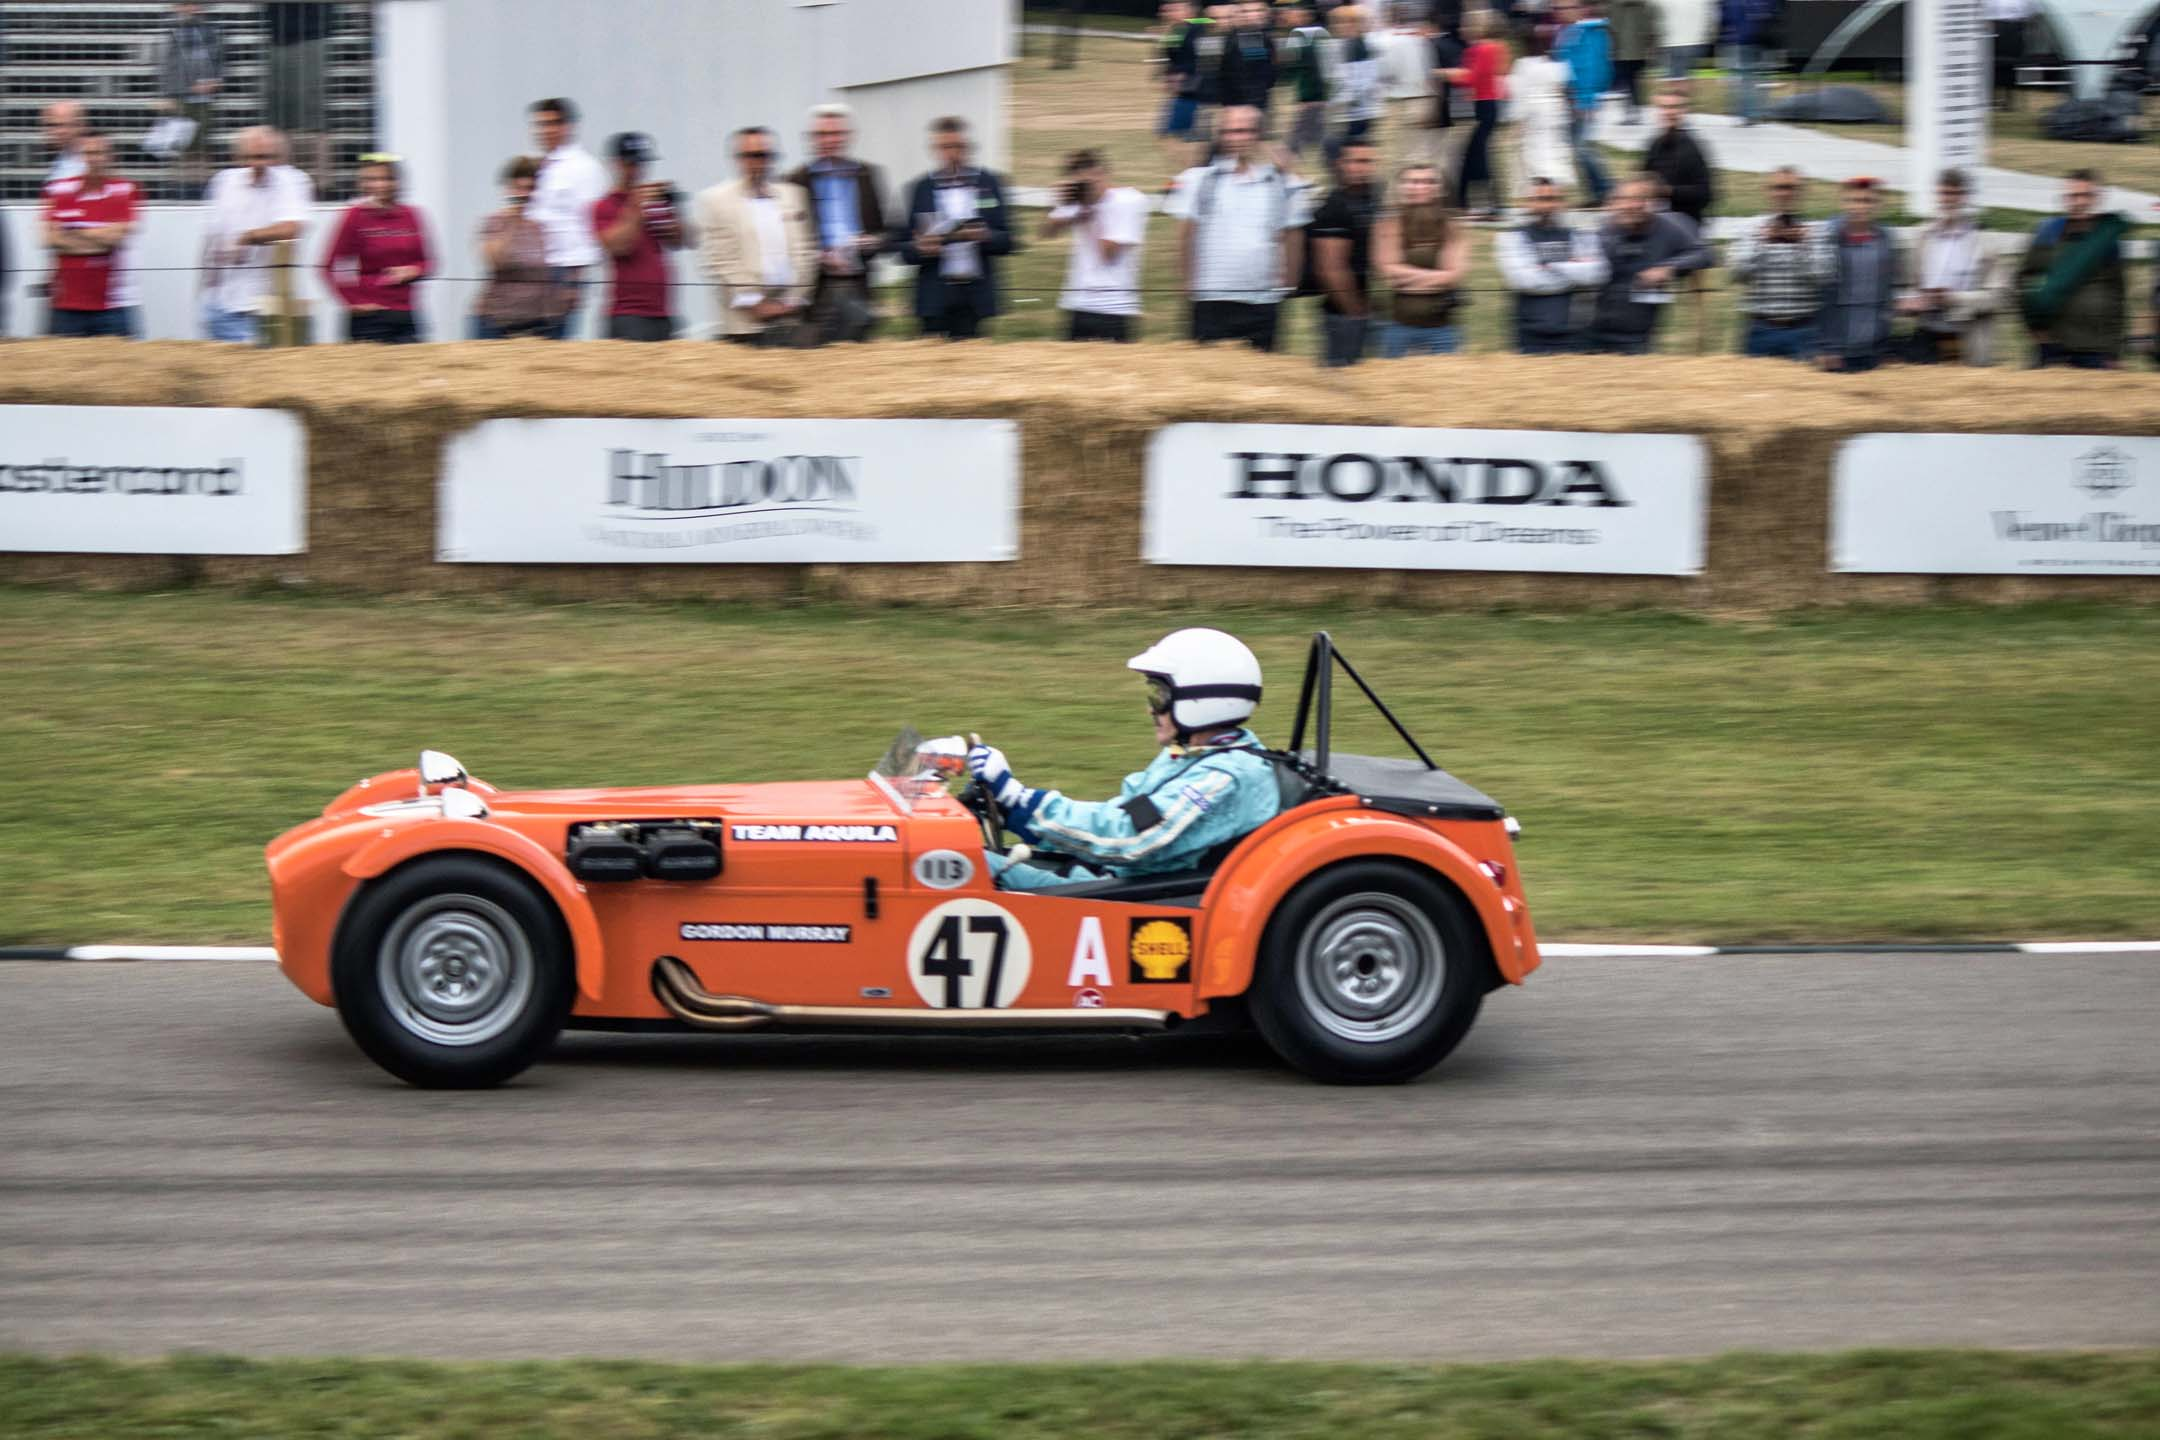 Noted car South African designer Gordon Murray goes up the hill in a Lotus Super Seven clone he built in his youth. Famous for many Brabham Formula One builds and the McLaren F1, Murray was surrounded by many of his own designs on the day.